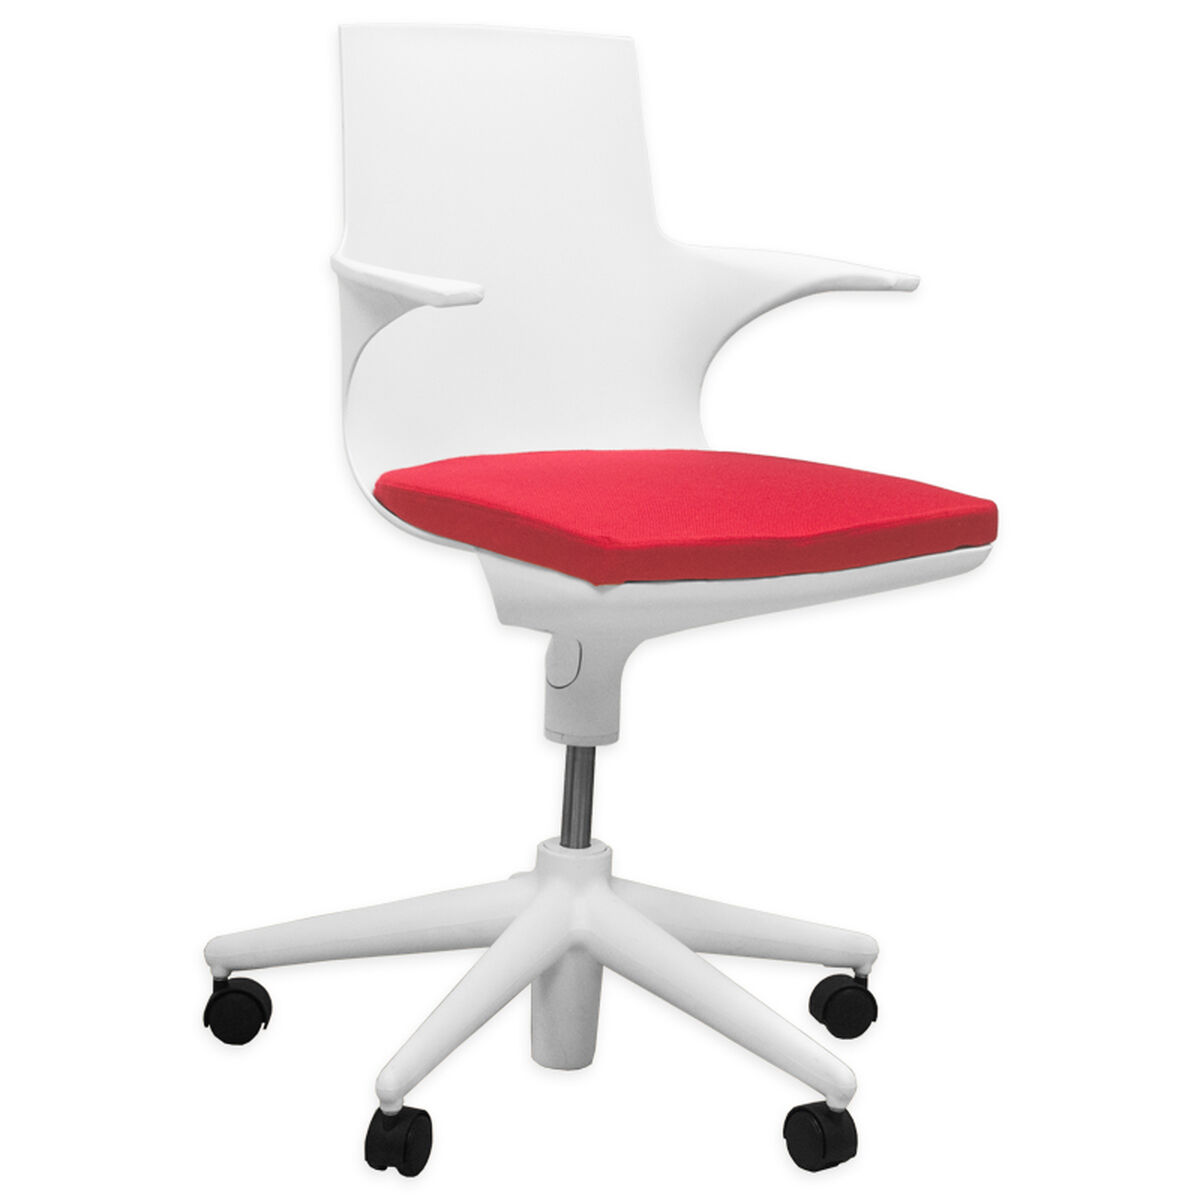 white rolling chair. Our Jaden White Plastic Rolling Chair With Red Cushion Is On Sale Now.